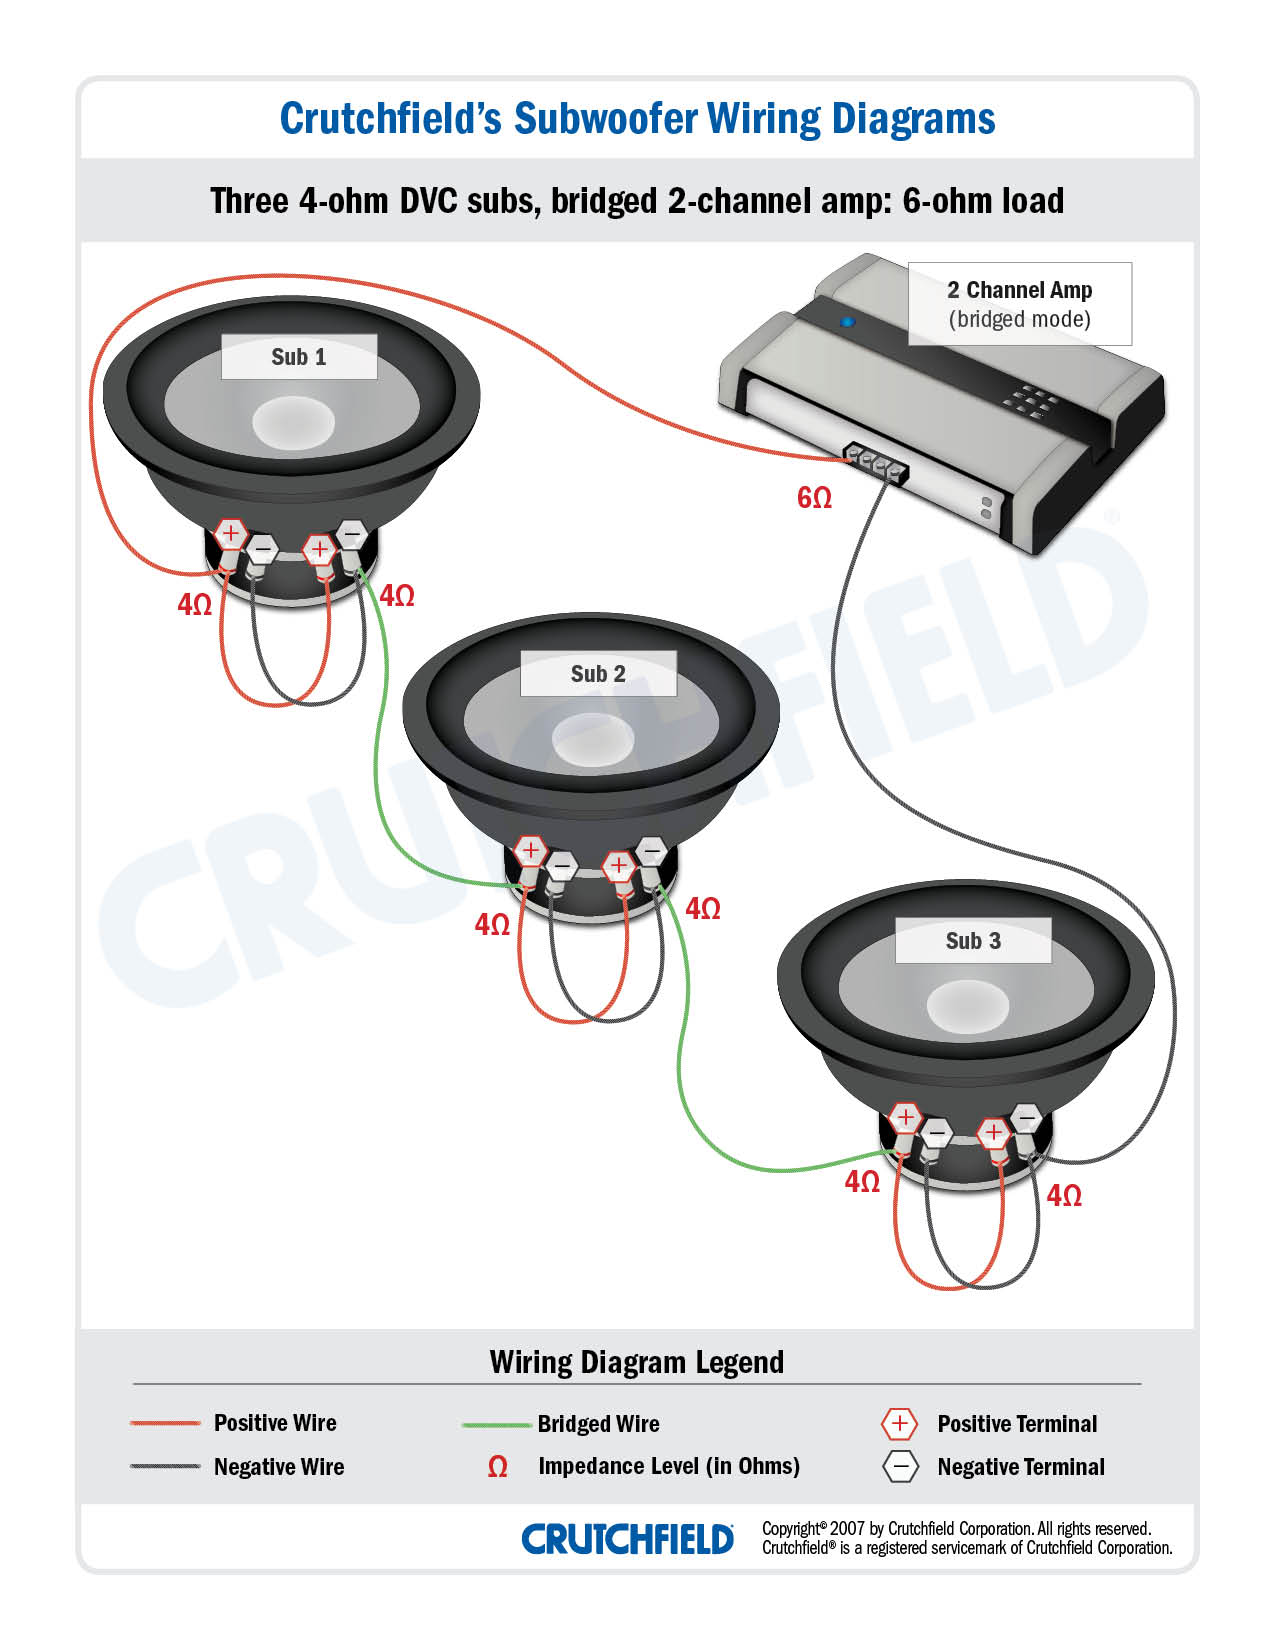 3 DVC 4 ohm 2 ch subwoofer wiring diagrams  at edmiracle.co